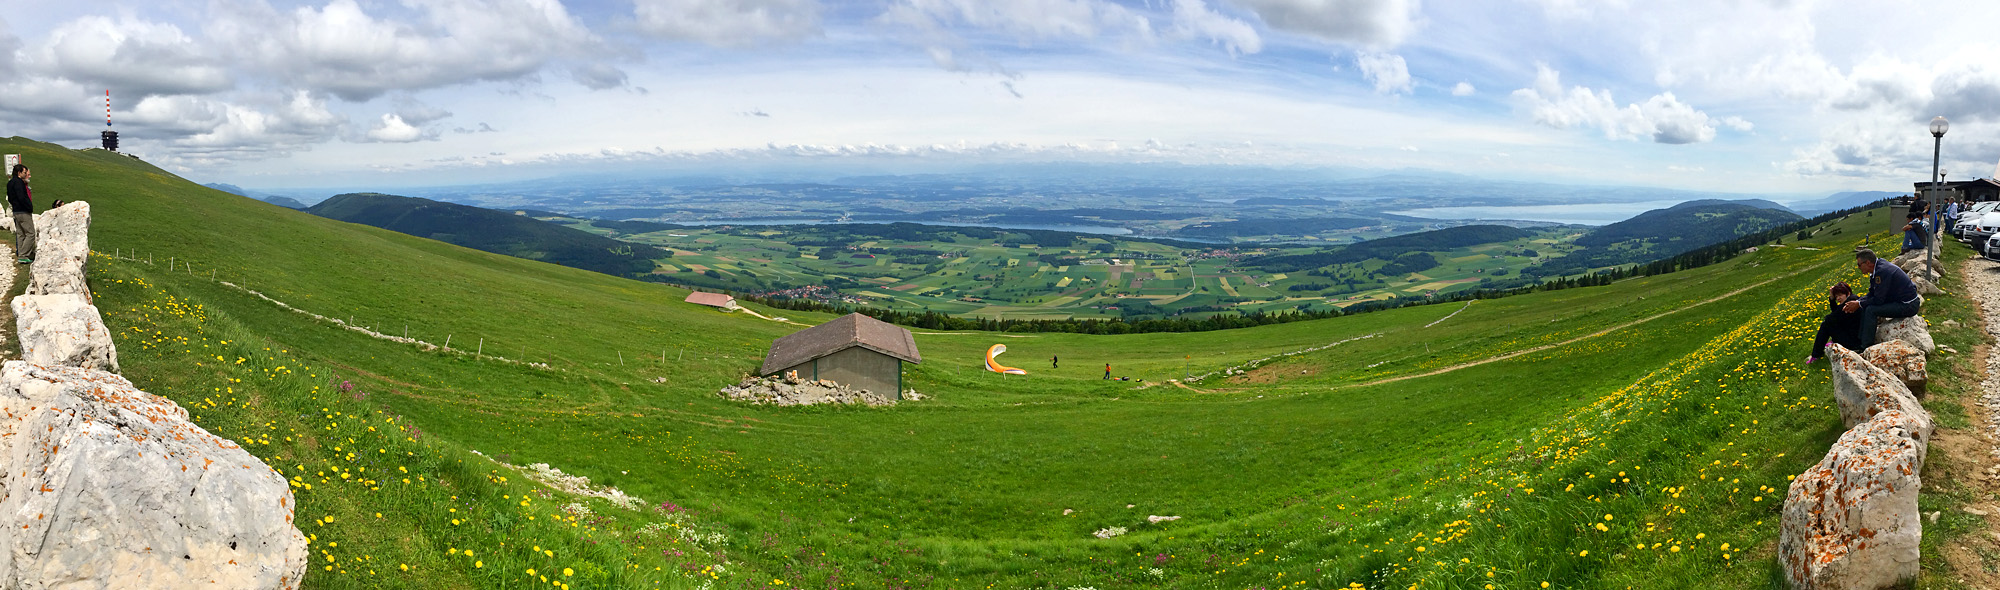 Panorama vom Chasseral-Gipfel